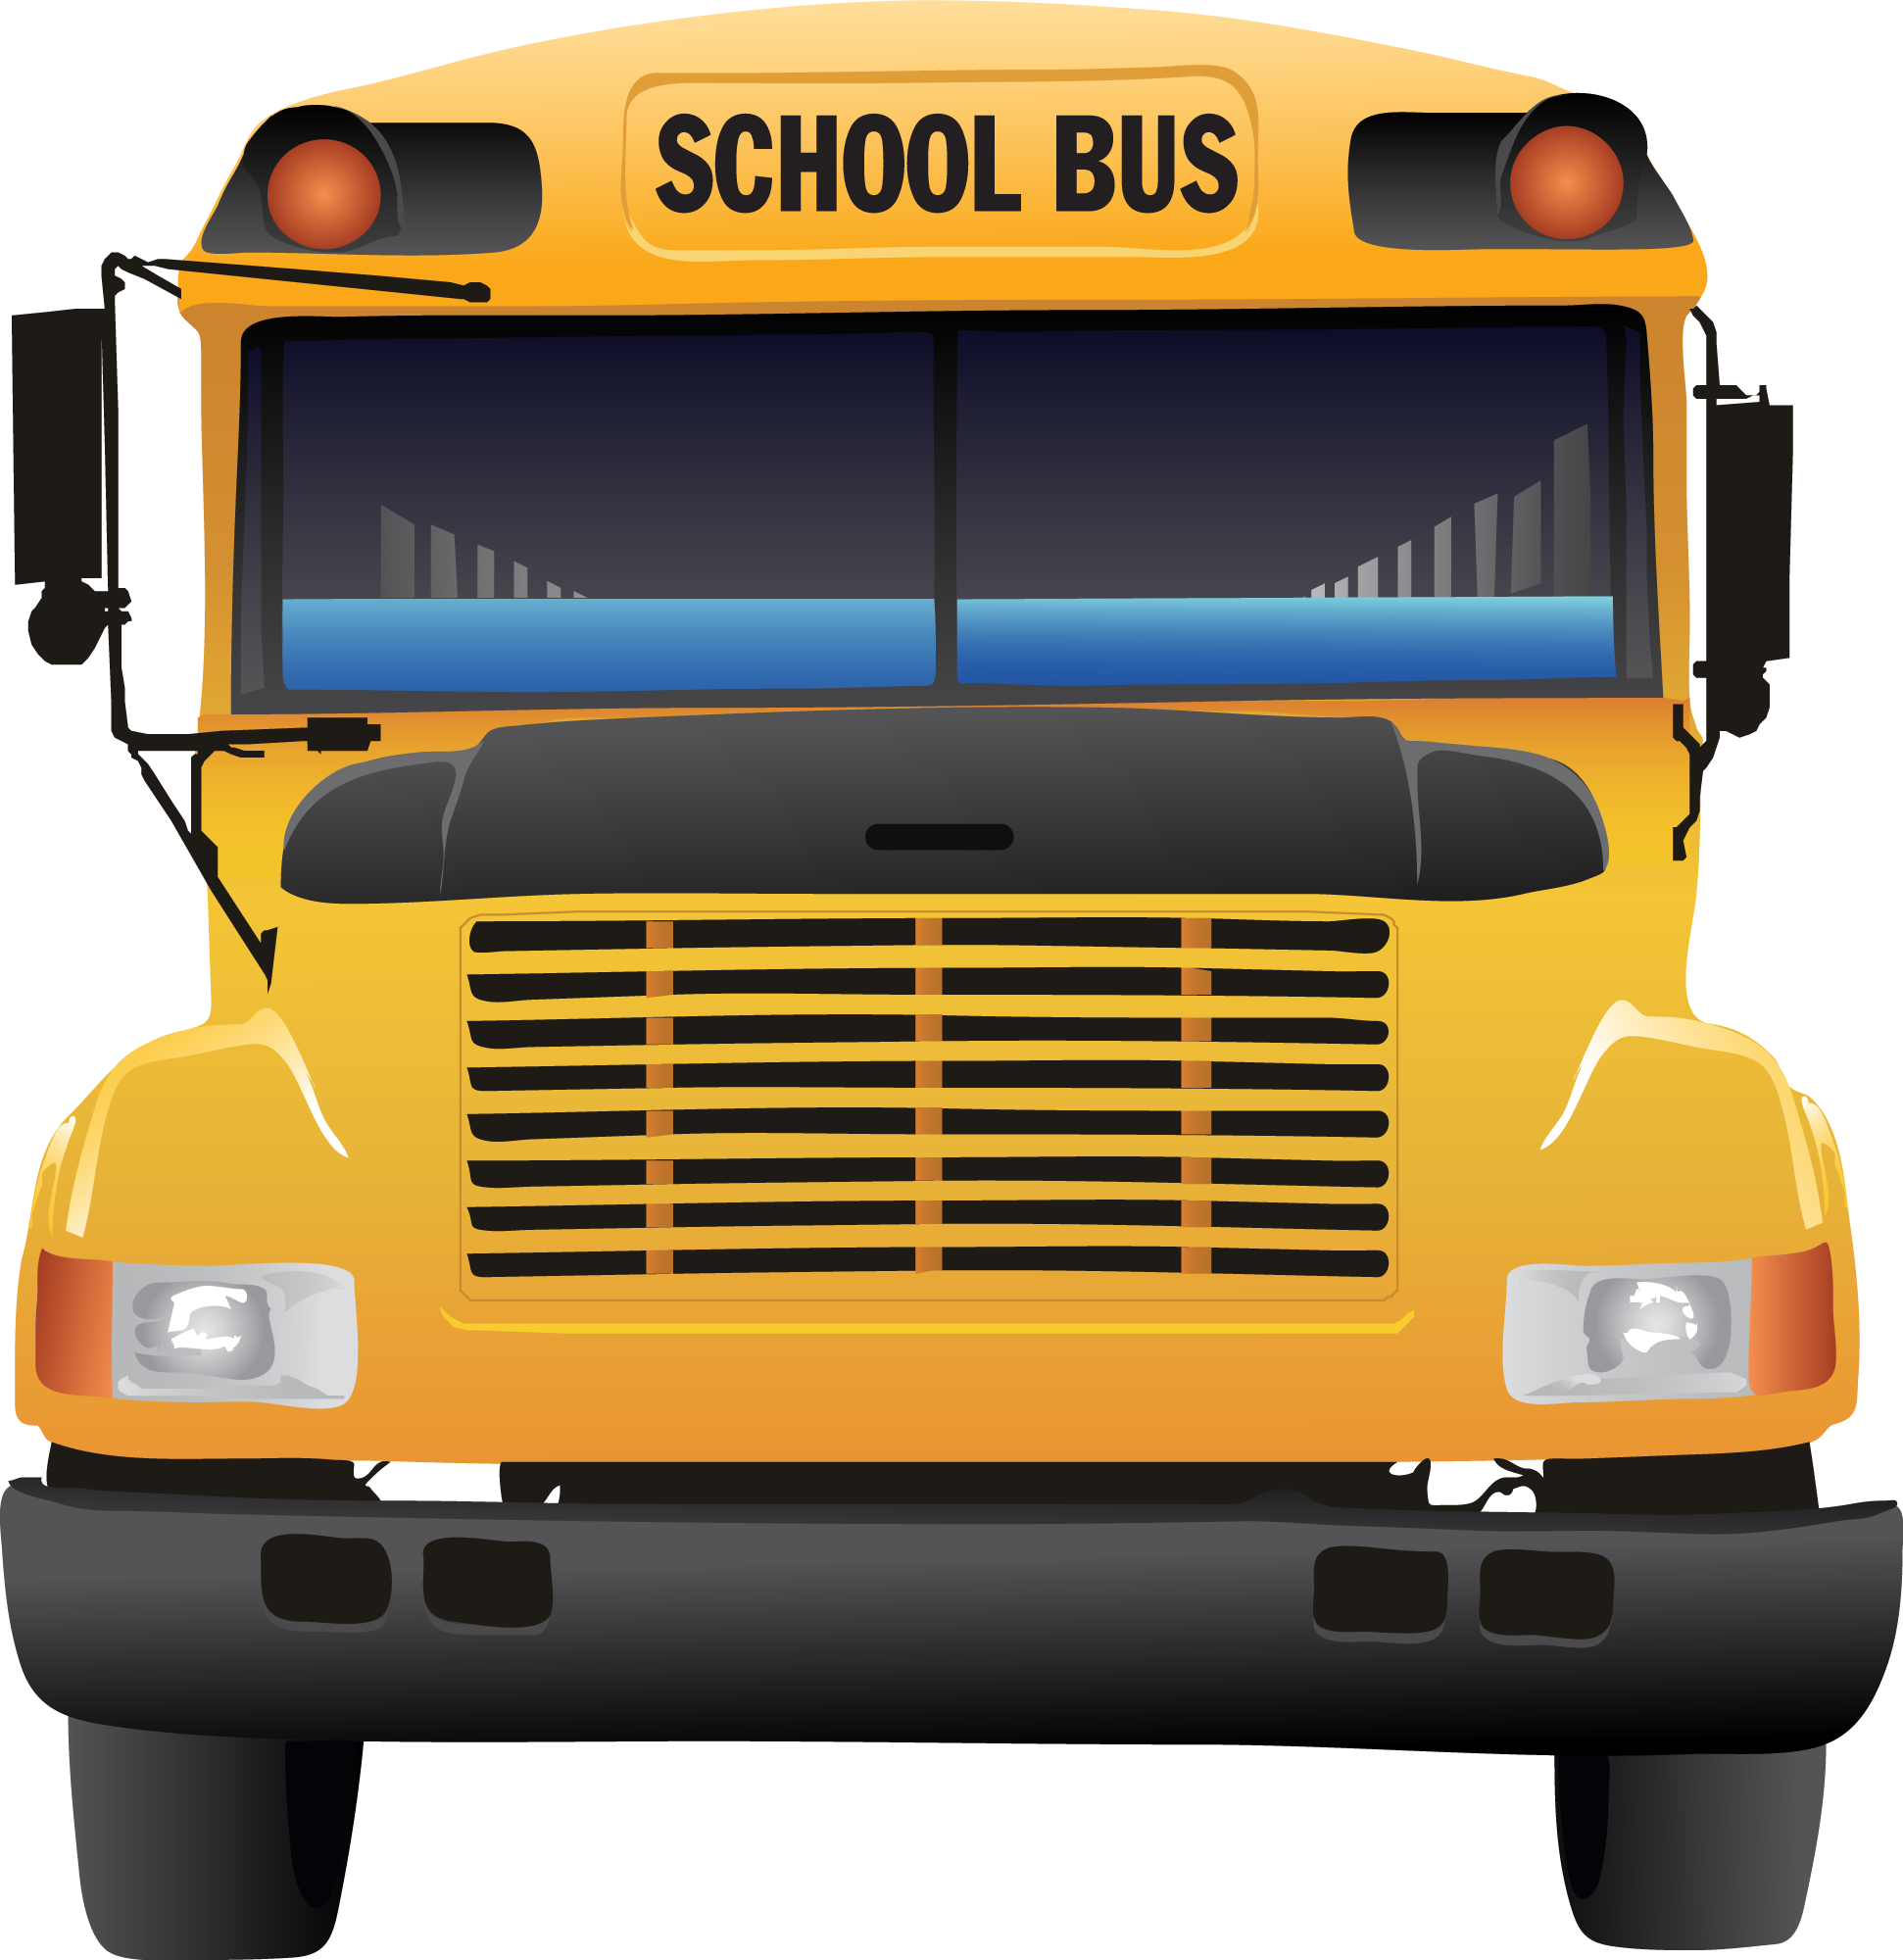 School bus border clipart banner library School Bus from Clipart Collection Version 1.0 (1) ©2012 Macmanus ... banner library